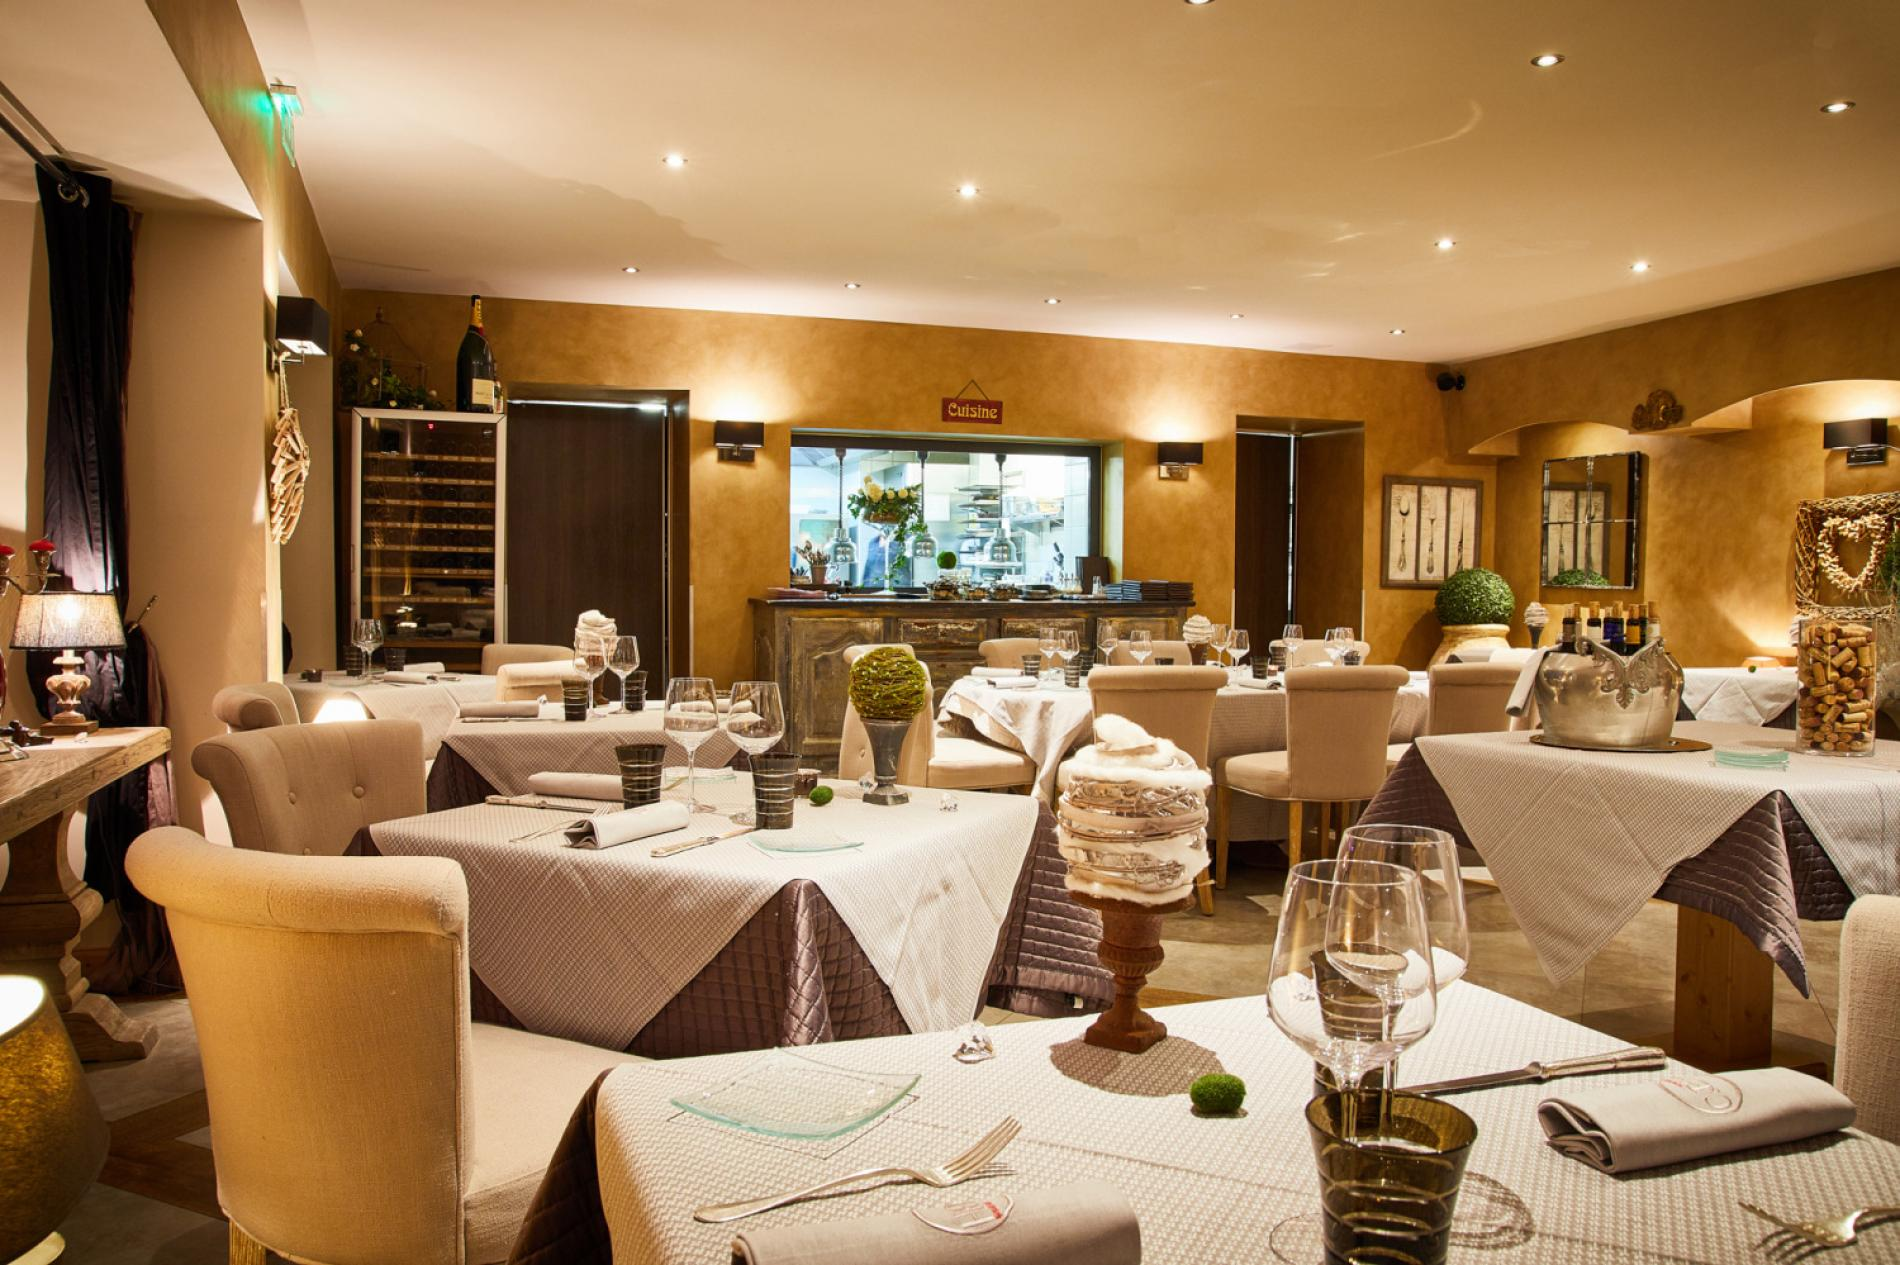 Cuisine Création Paray Le Monial restaurant of the hotel charme & business lyon at the